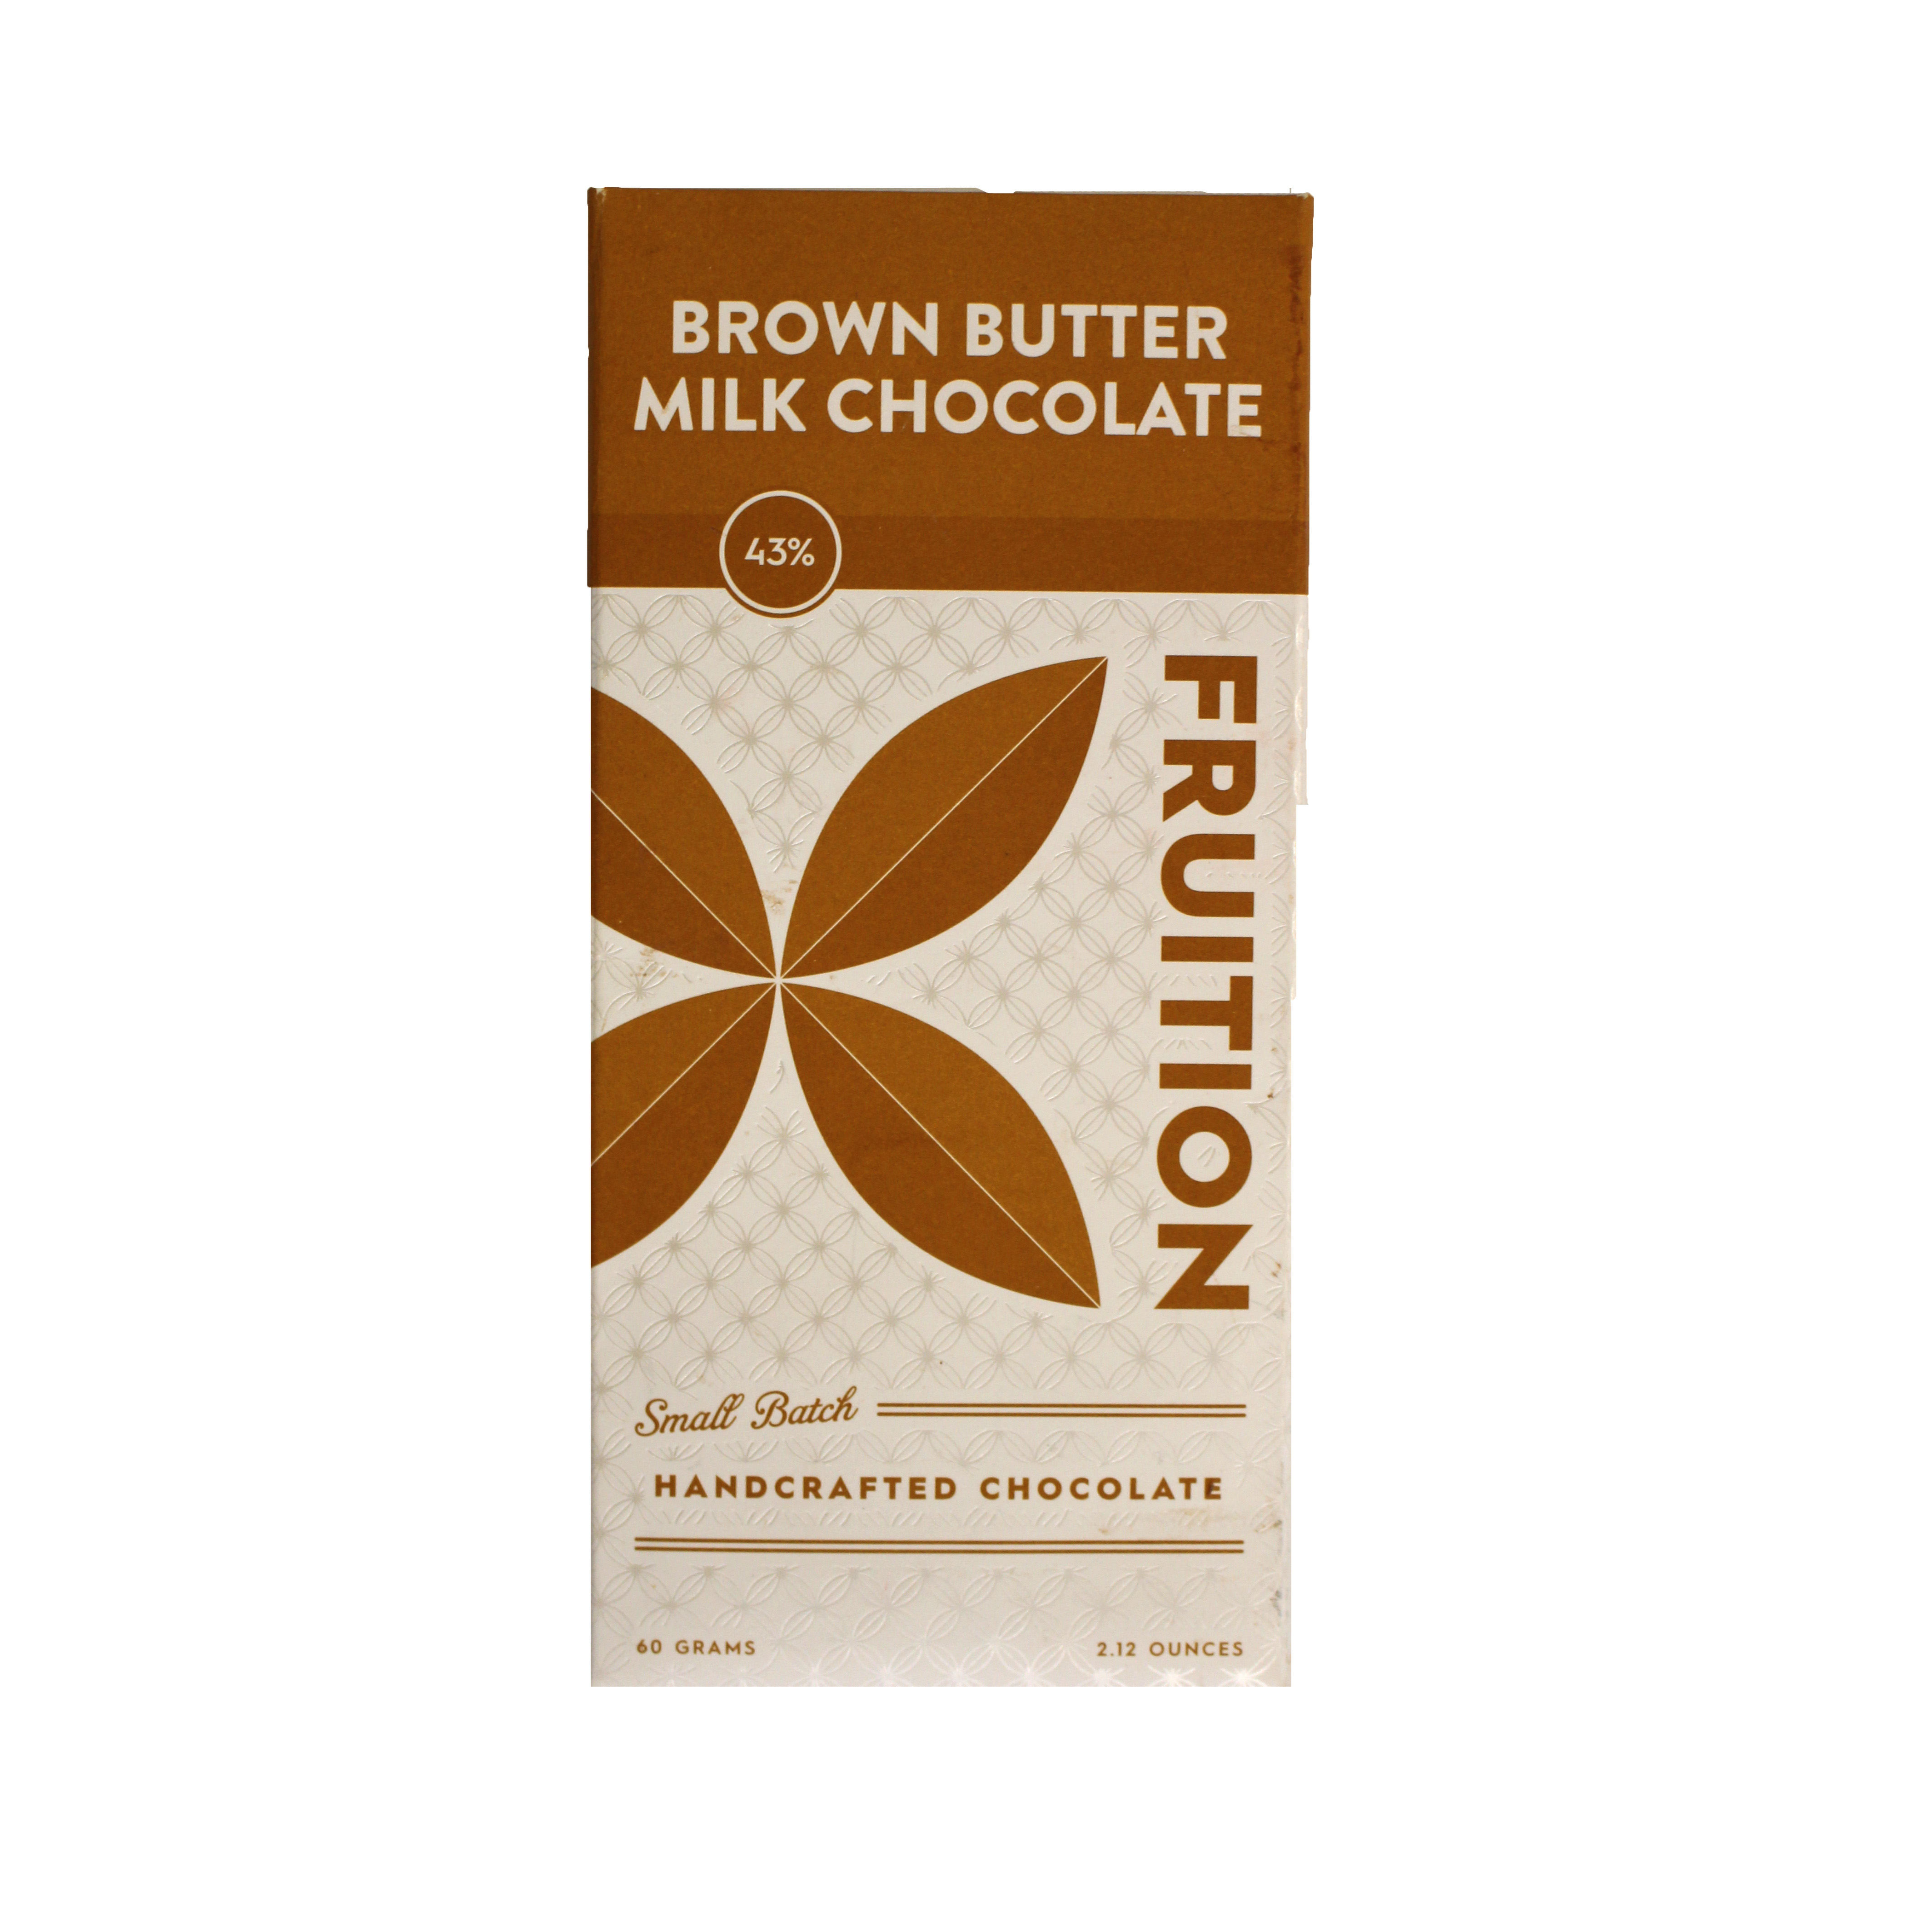 Fruition - A Micro-Batch American Chocolate Maker from New York, USA